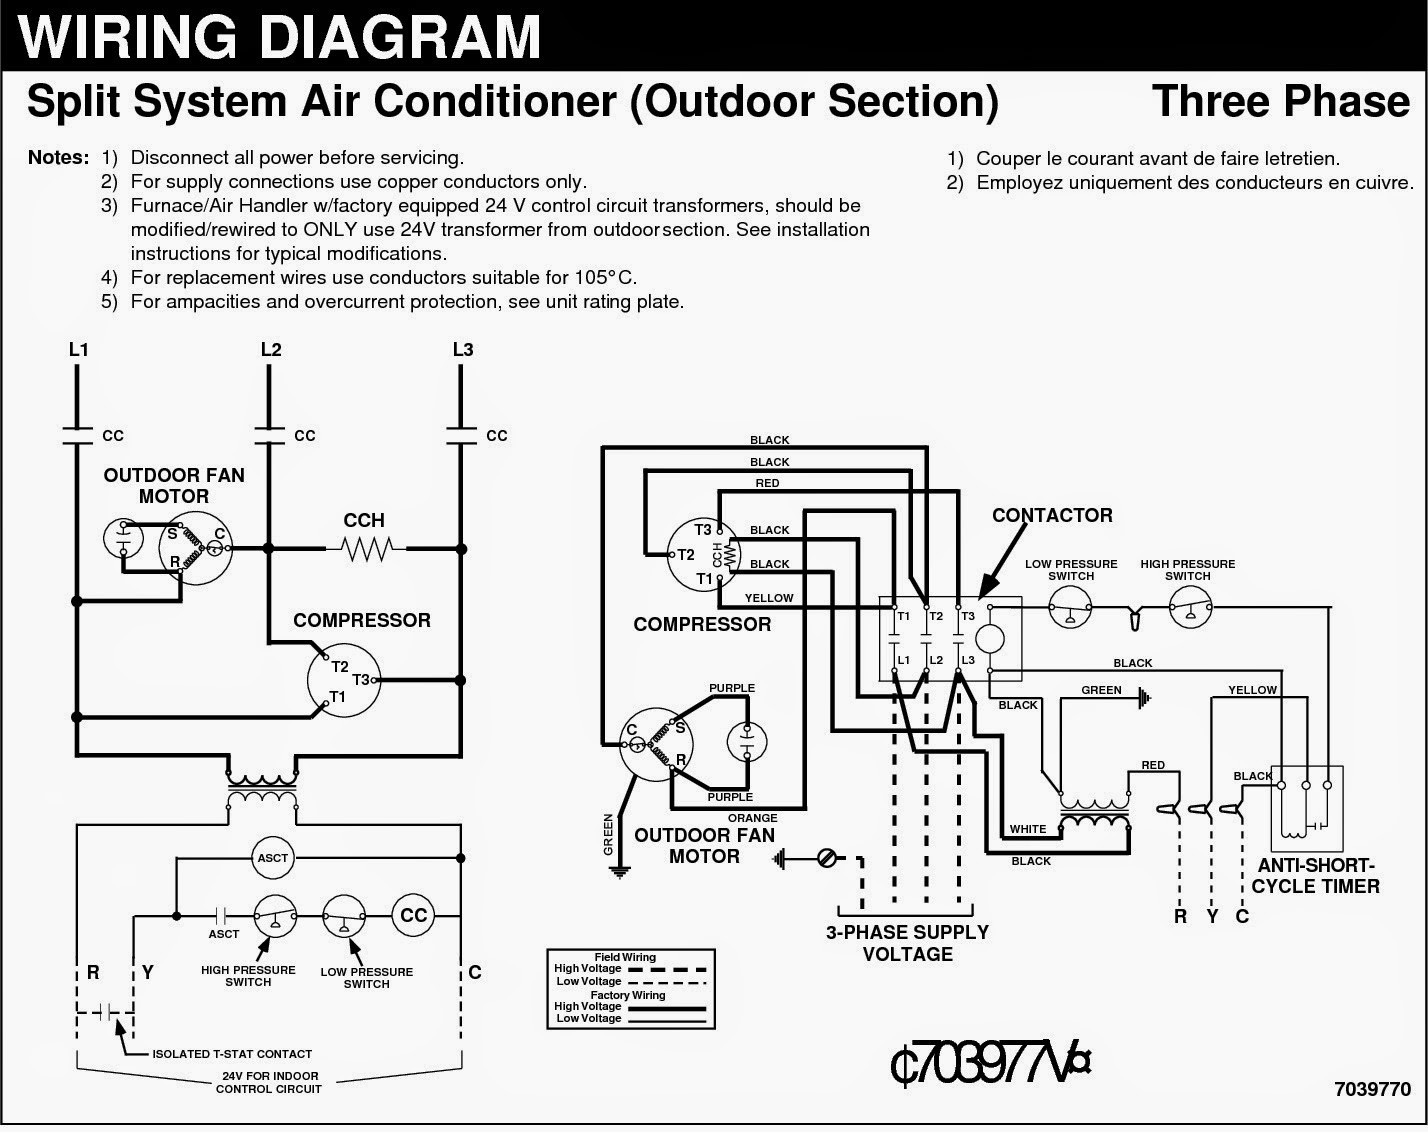 3 wire electrical wiring diagram alpine cda 9856 diagrams for air conditioning systems